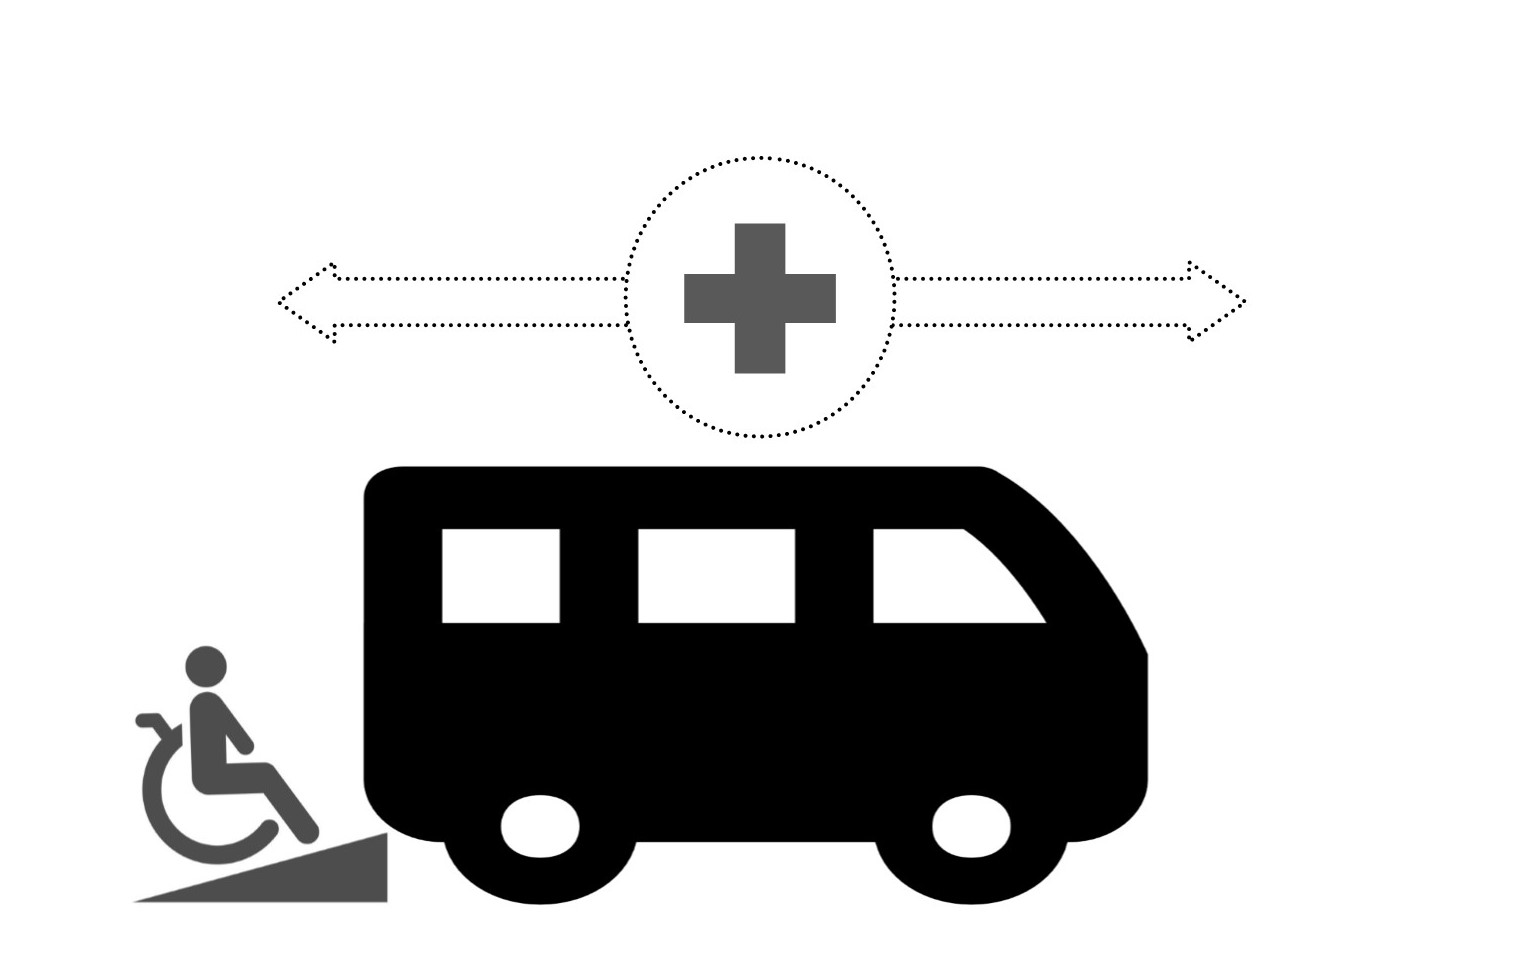 Past present and future in transportation clipart svg free stock Non-Emergency Medical Transportation: Trends and Innovative ... svg free stock